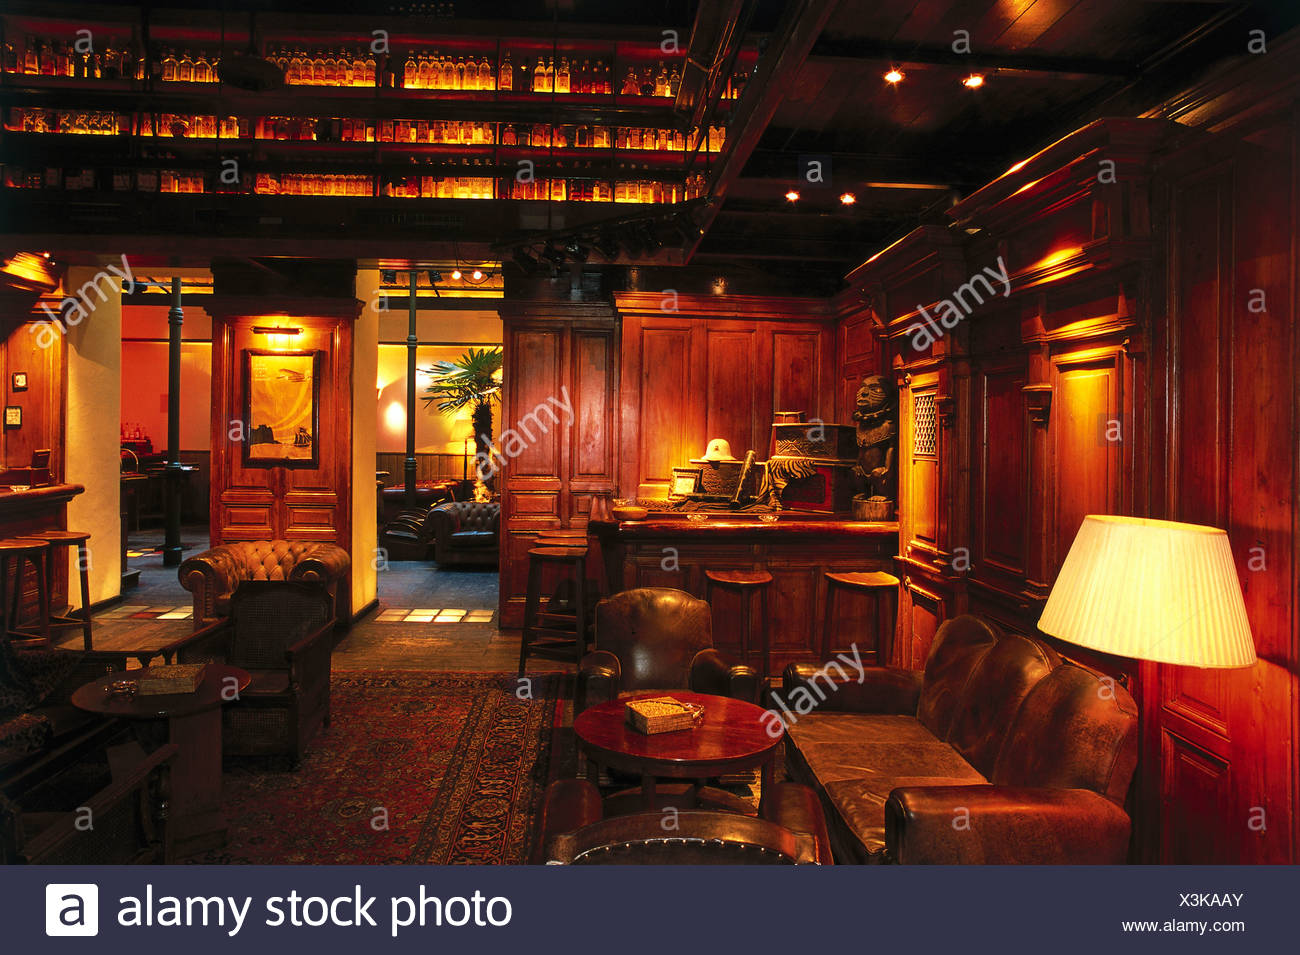 Austria, Vienna, Planter's Club, interior of colonial-style bar with on